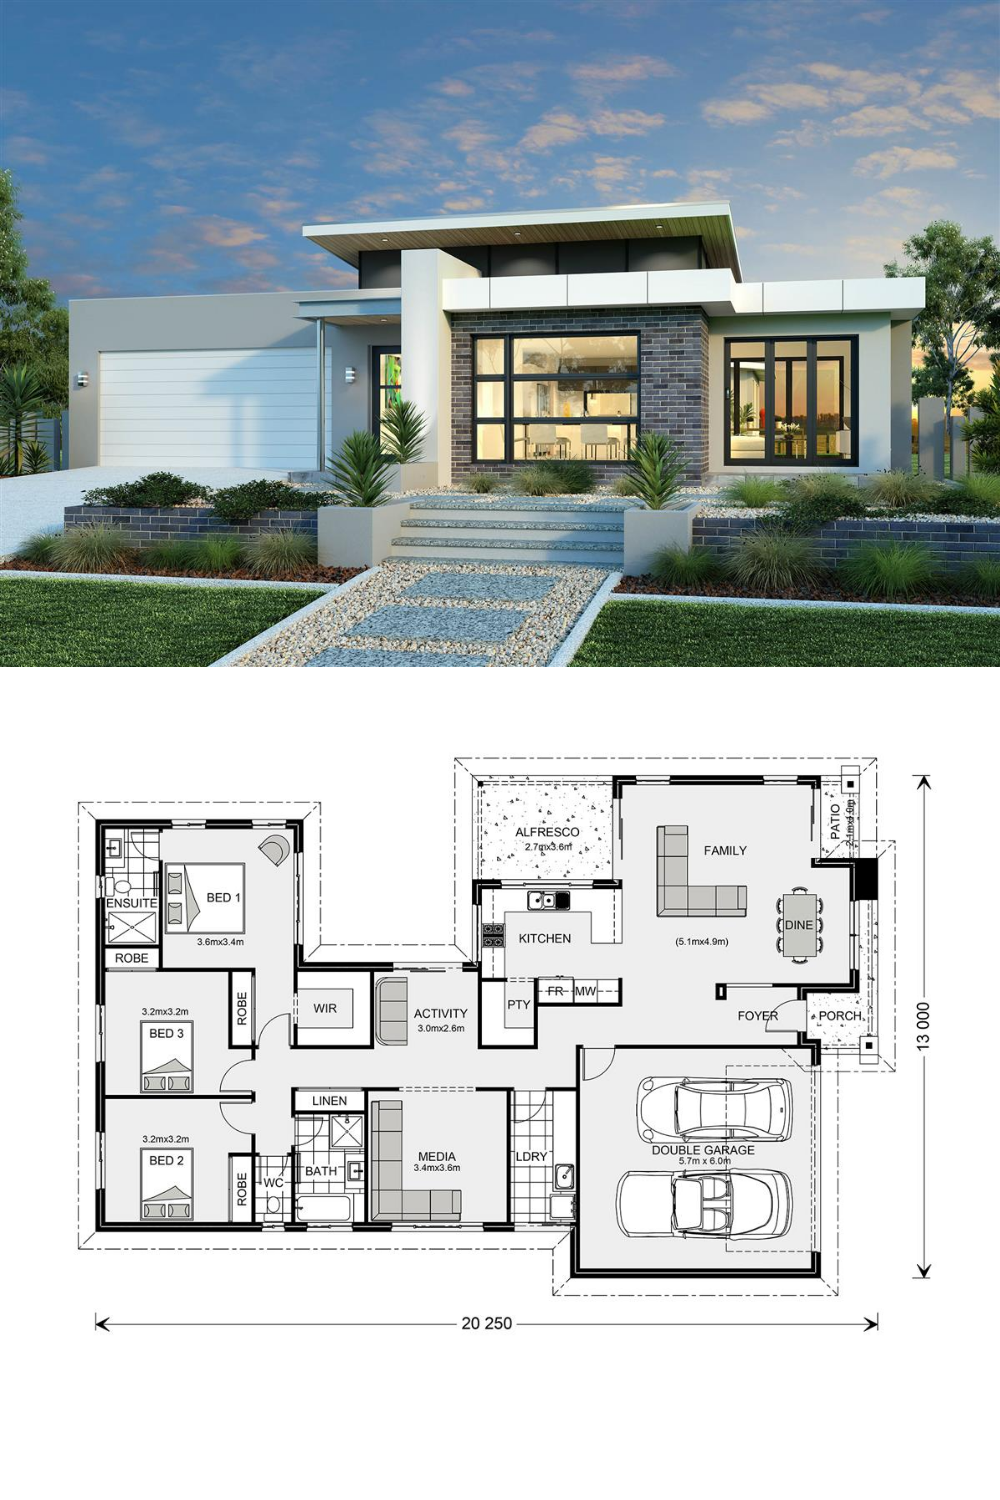 Splendid Three Bedroom Modern House Design Bungalow Style House Plans House Plan Gallery Model House Plan